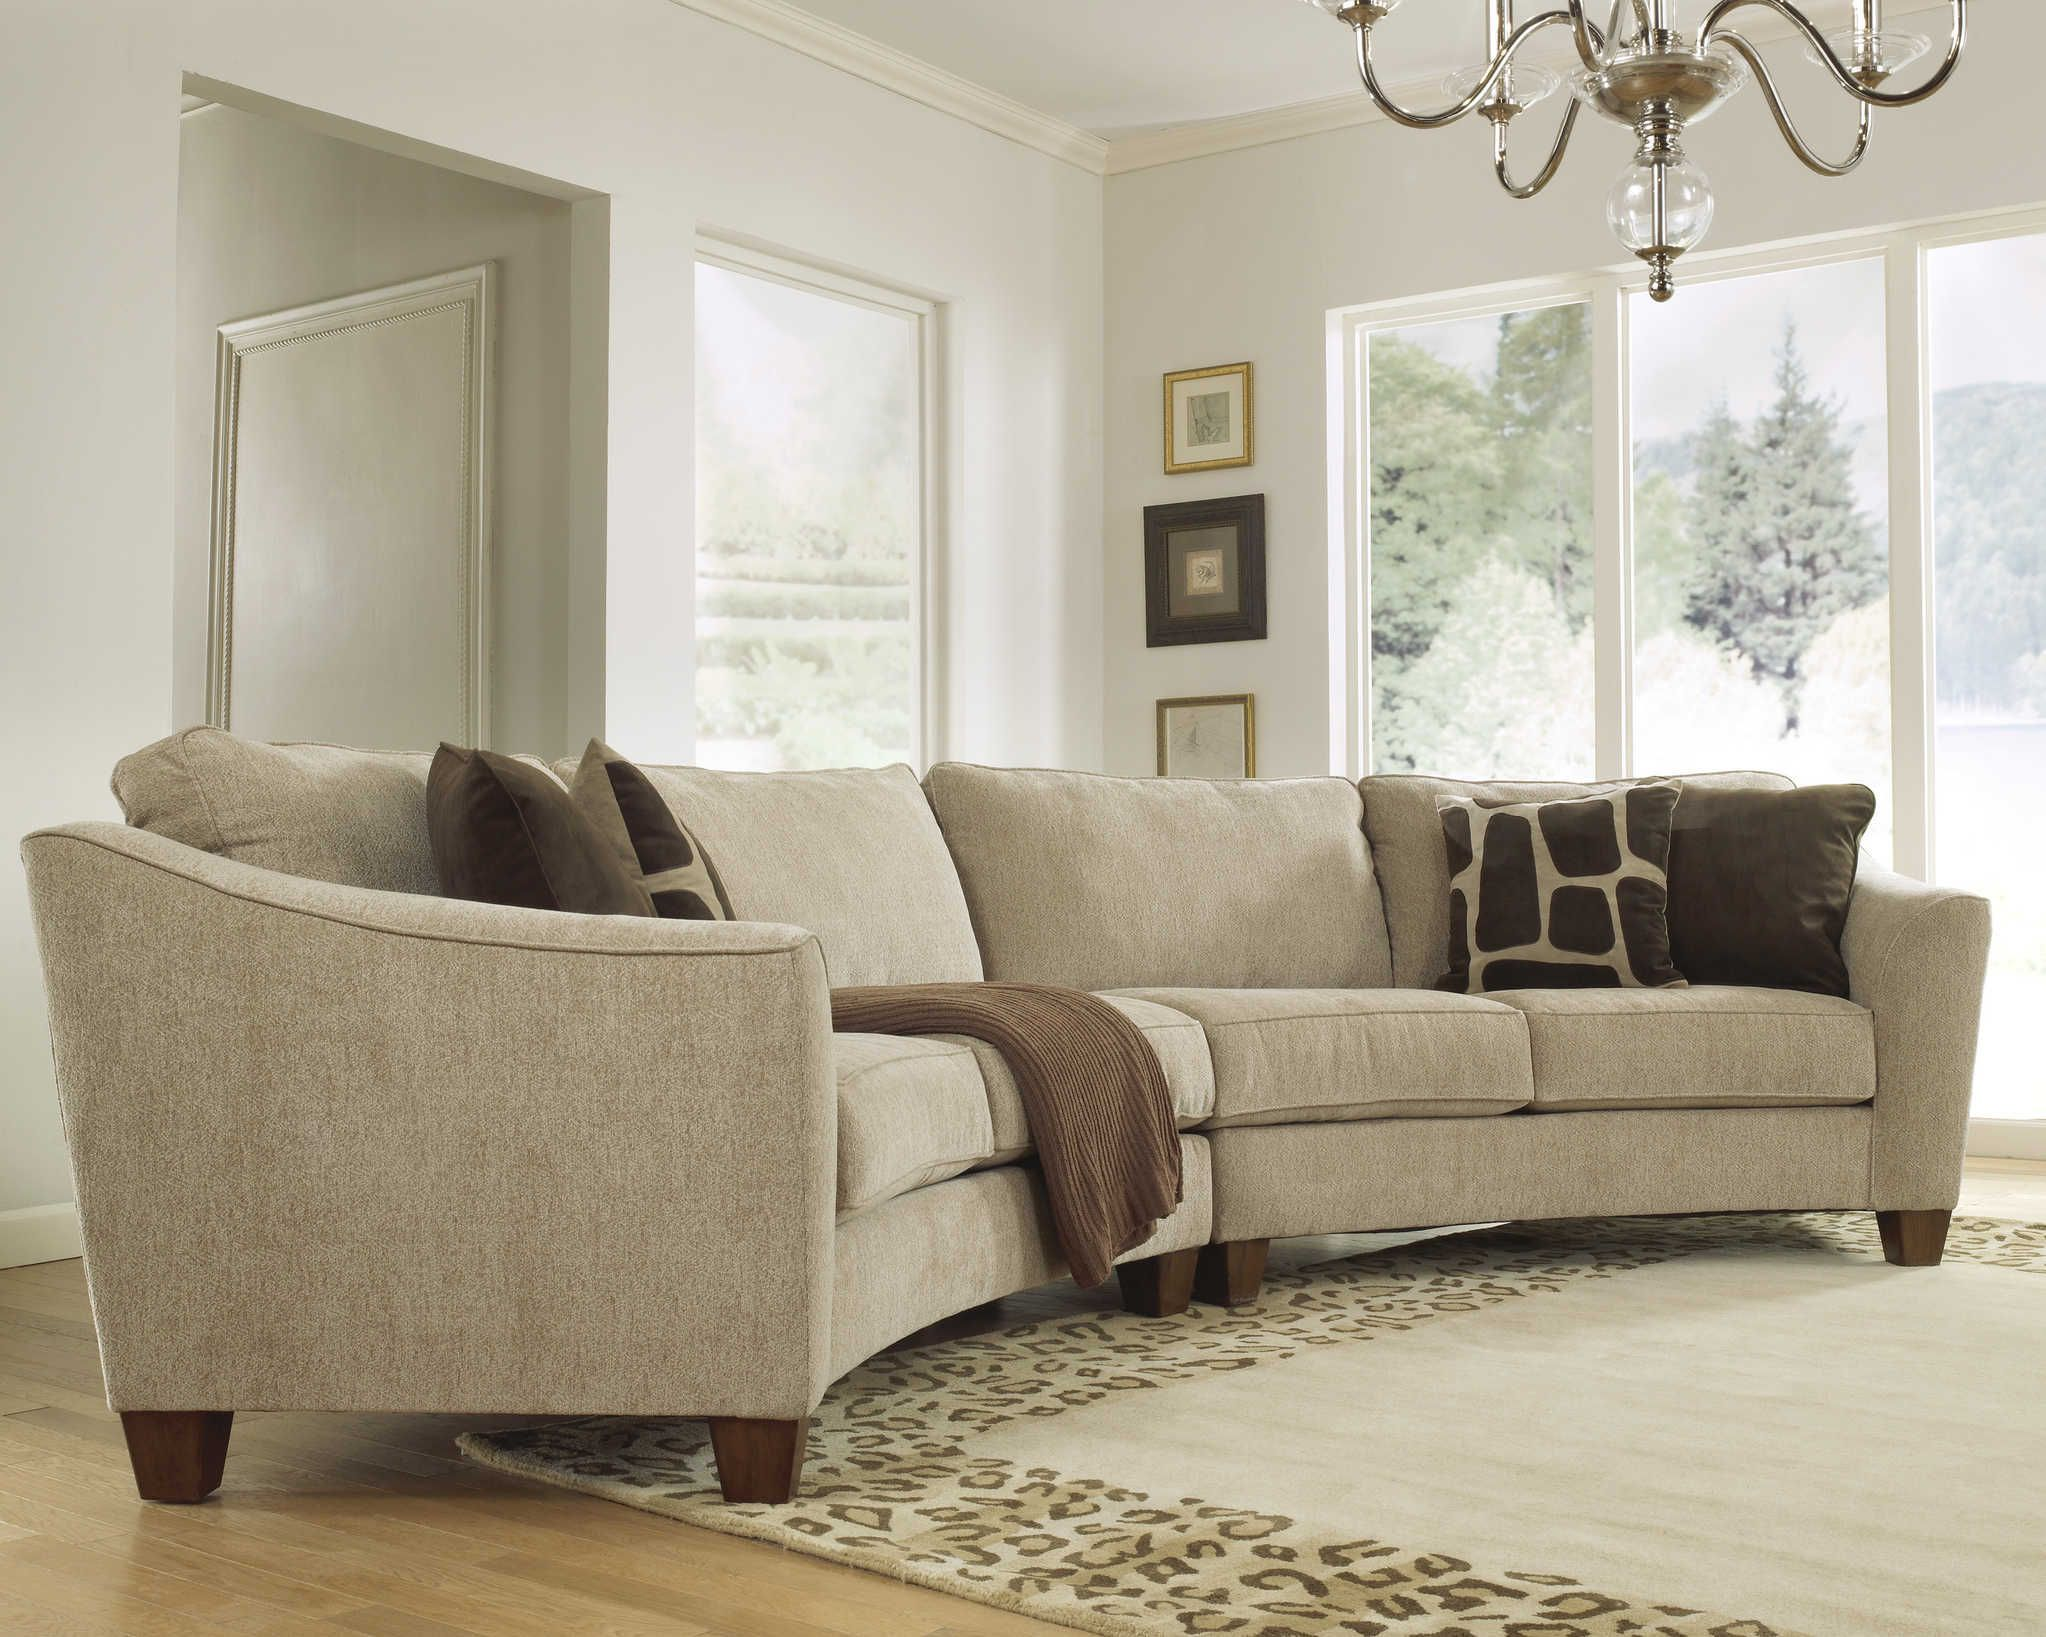 Curved Sectional Sofa Set – Rich Comfortable Upholstered Fabric – Contemporary C… – pickndecor/home